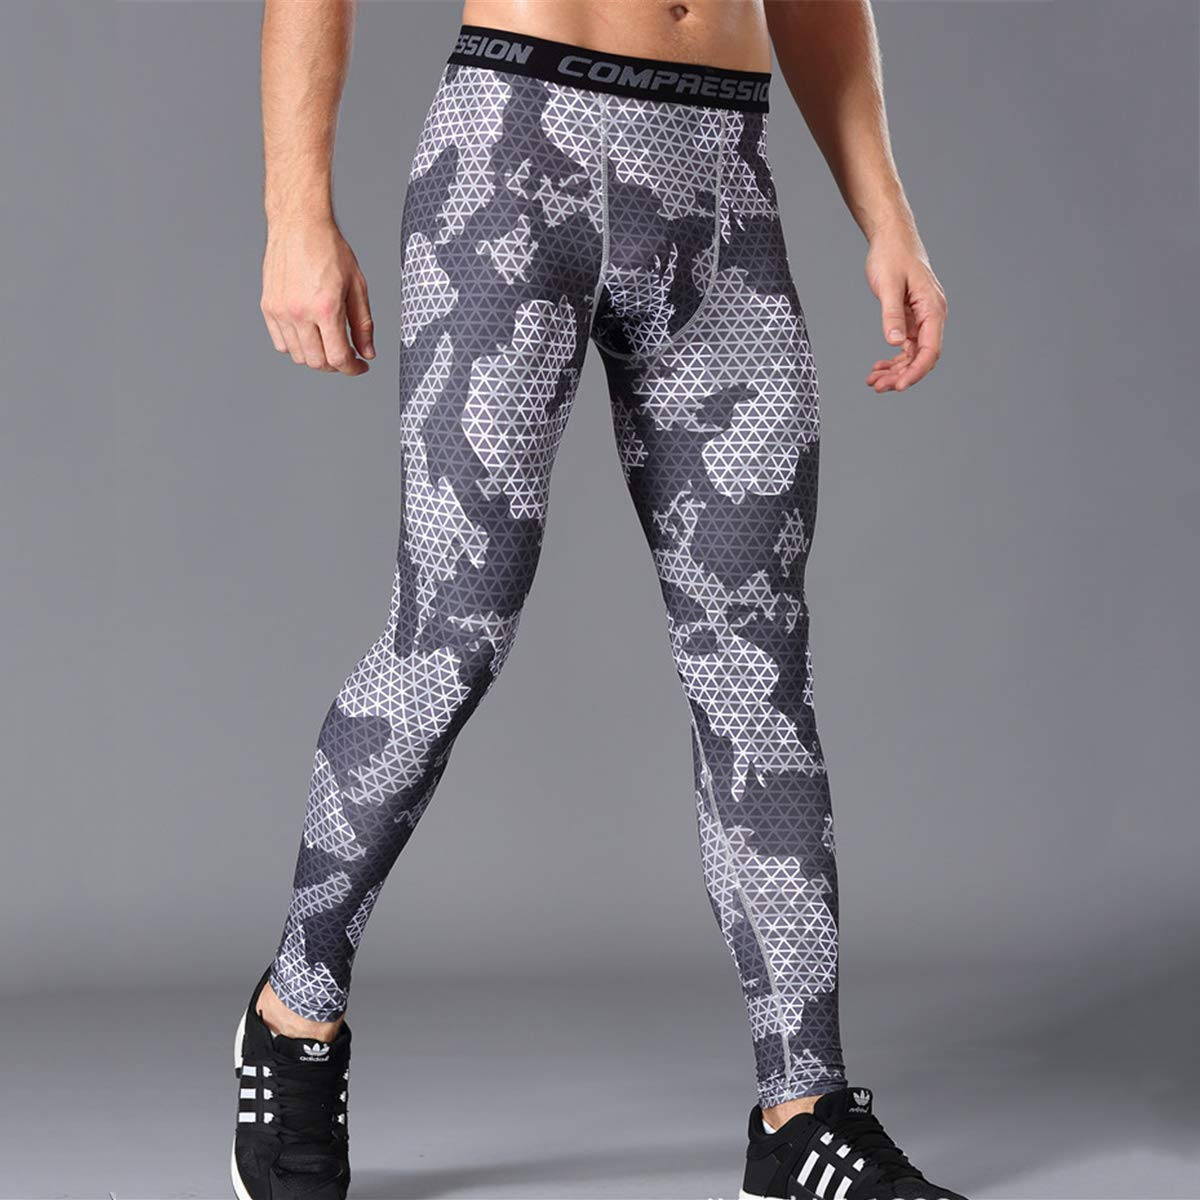 Foneedgo Exercise Pants Long for Men Camouflage Elastic Quick Drying Running Trousers Gym